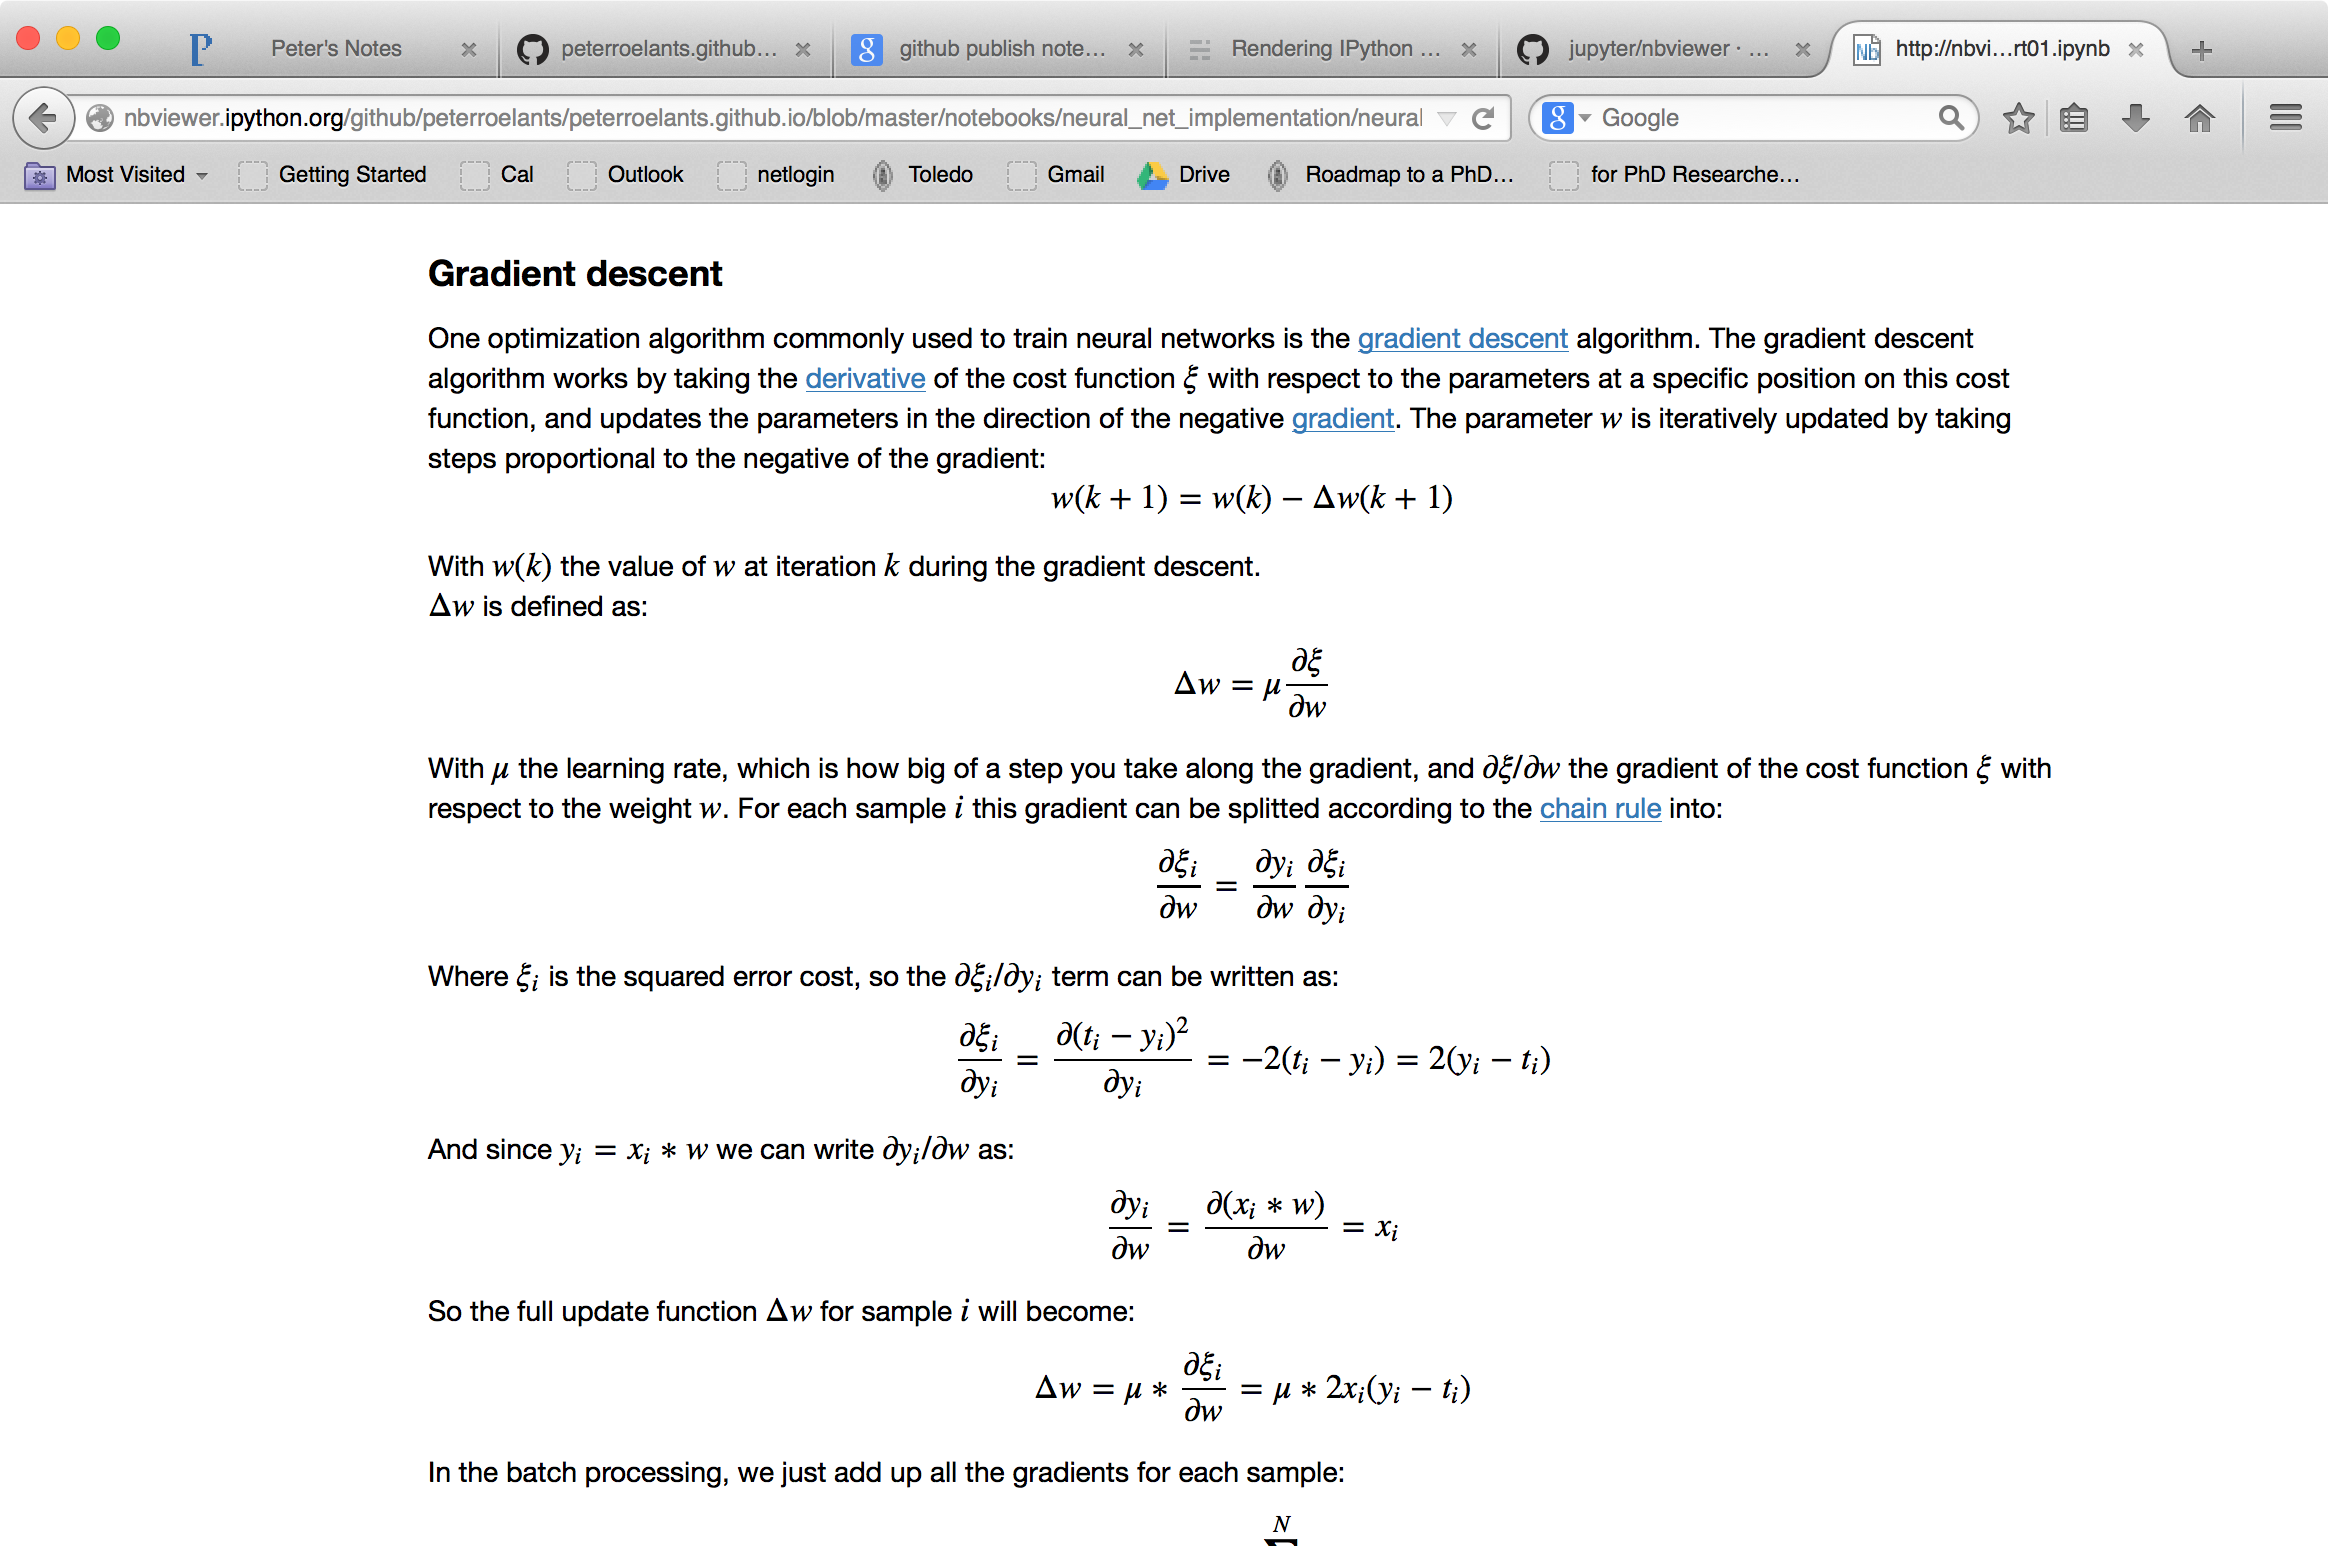 Equations not rendered properly in new github ipython